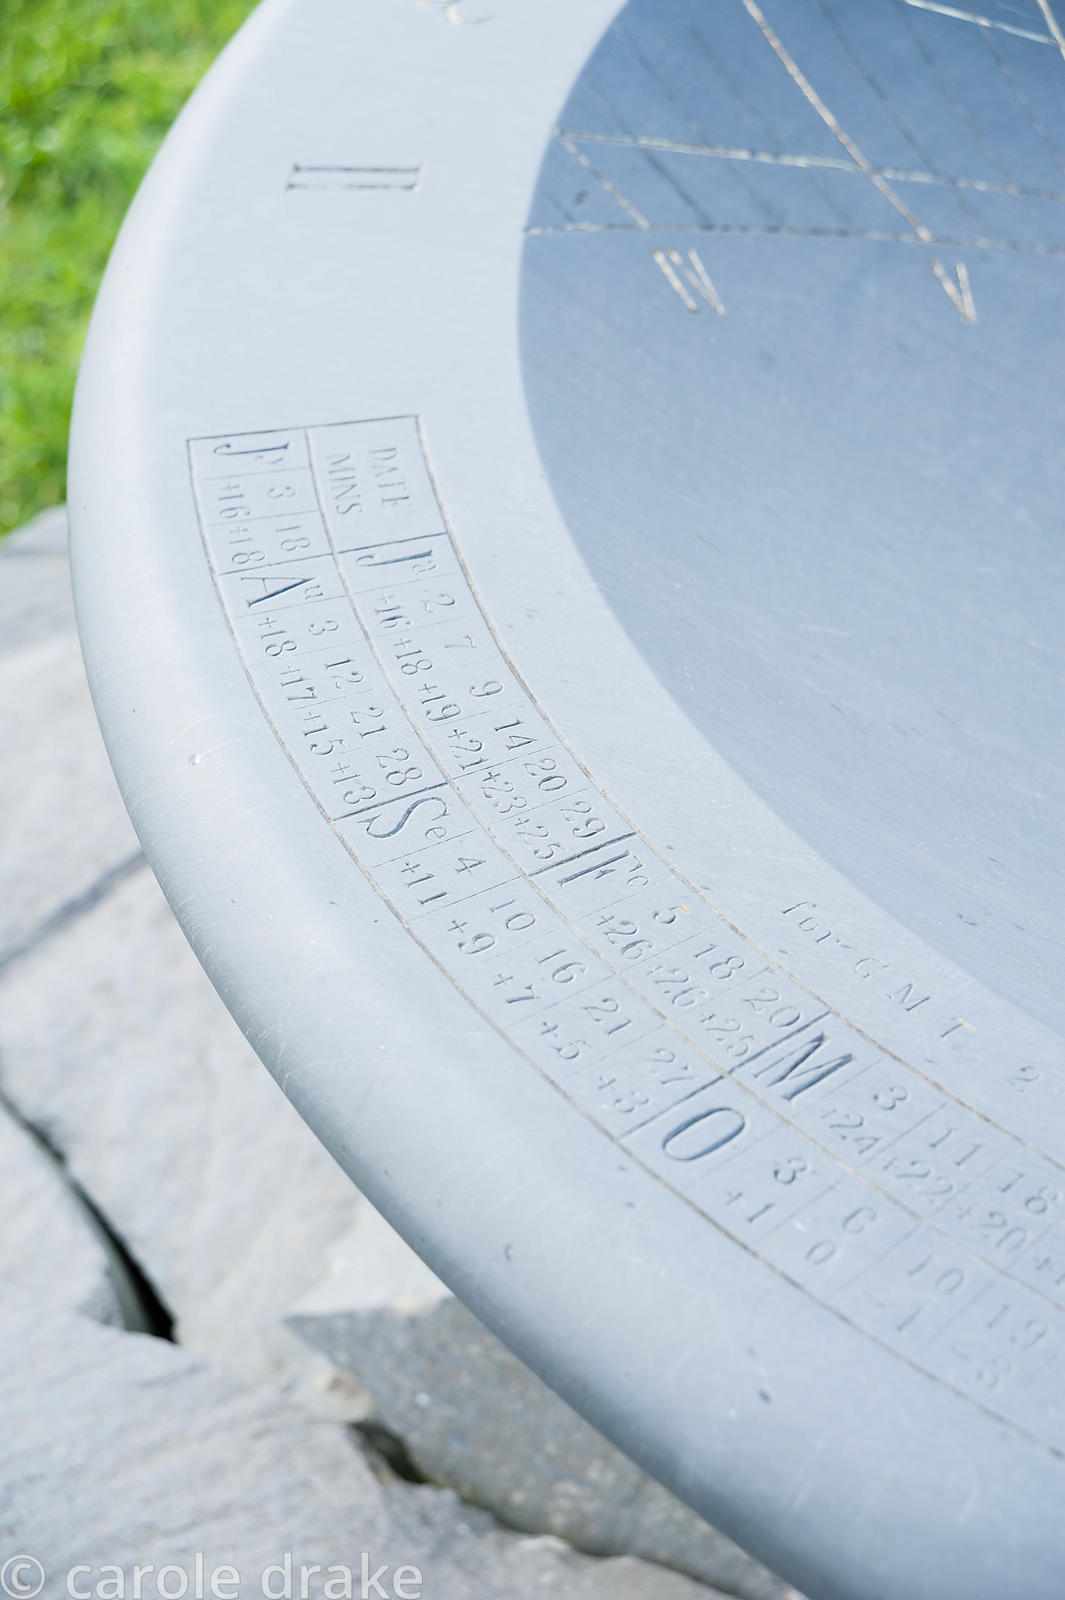 Slate sundial measuring 1.5m in diameter, designed by Sir Mark Lennox-Boyd. It emulates the earliest known sundial dating fro...